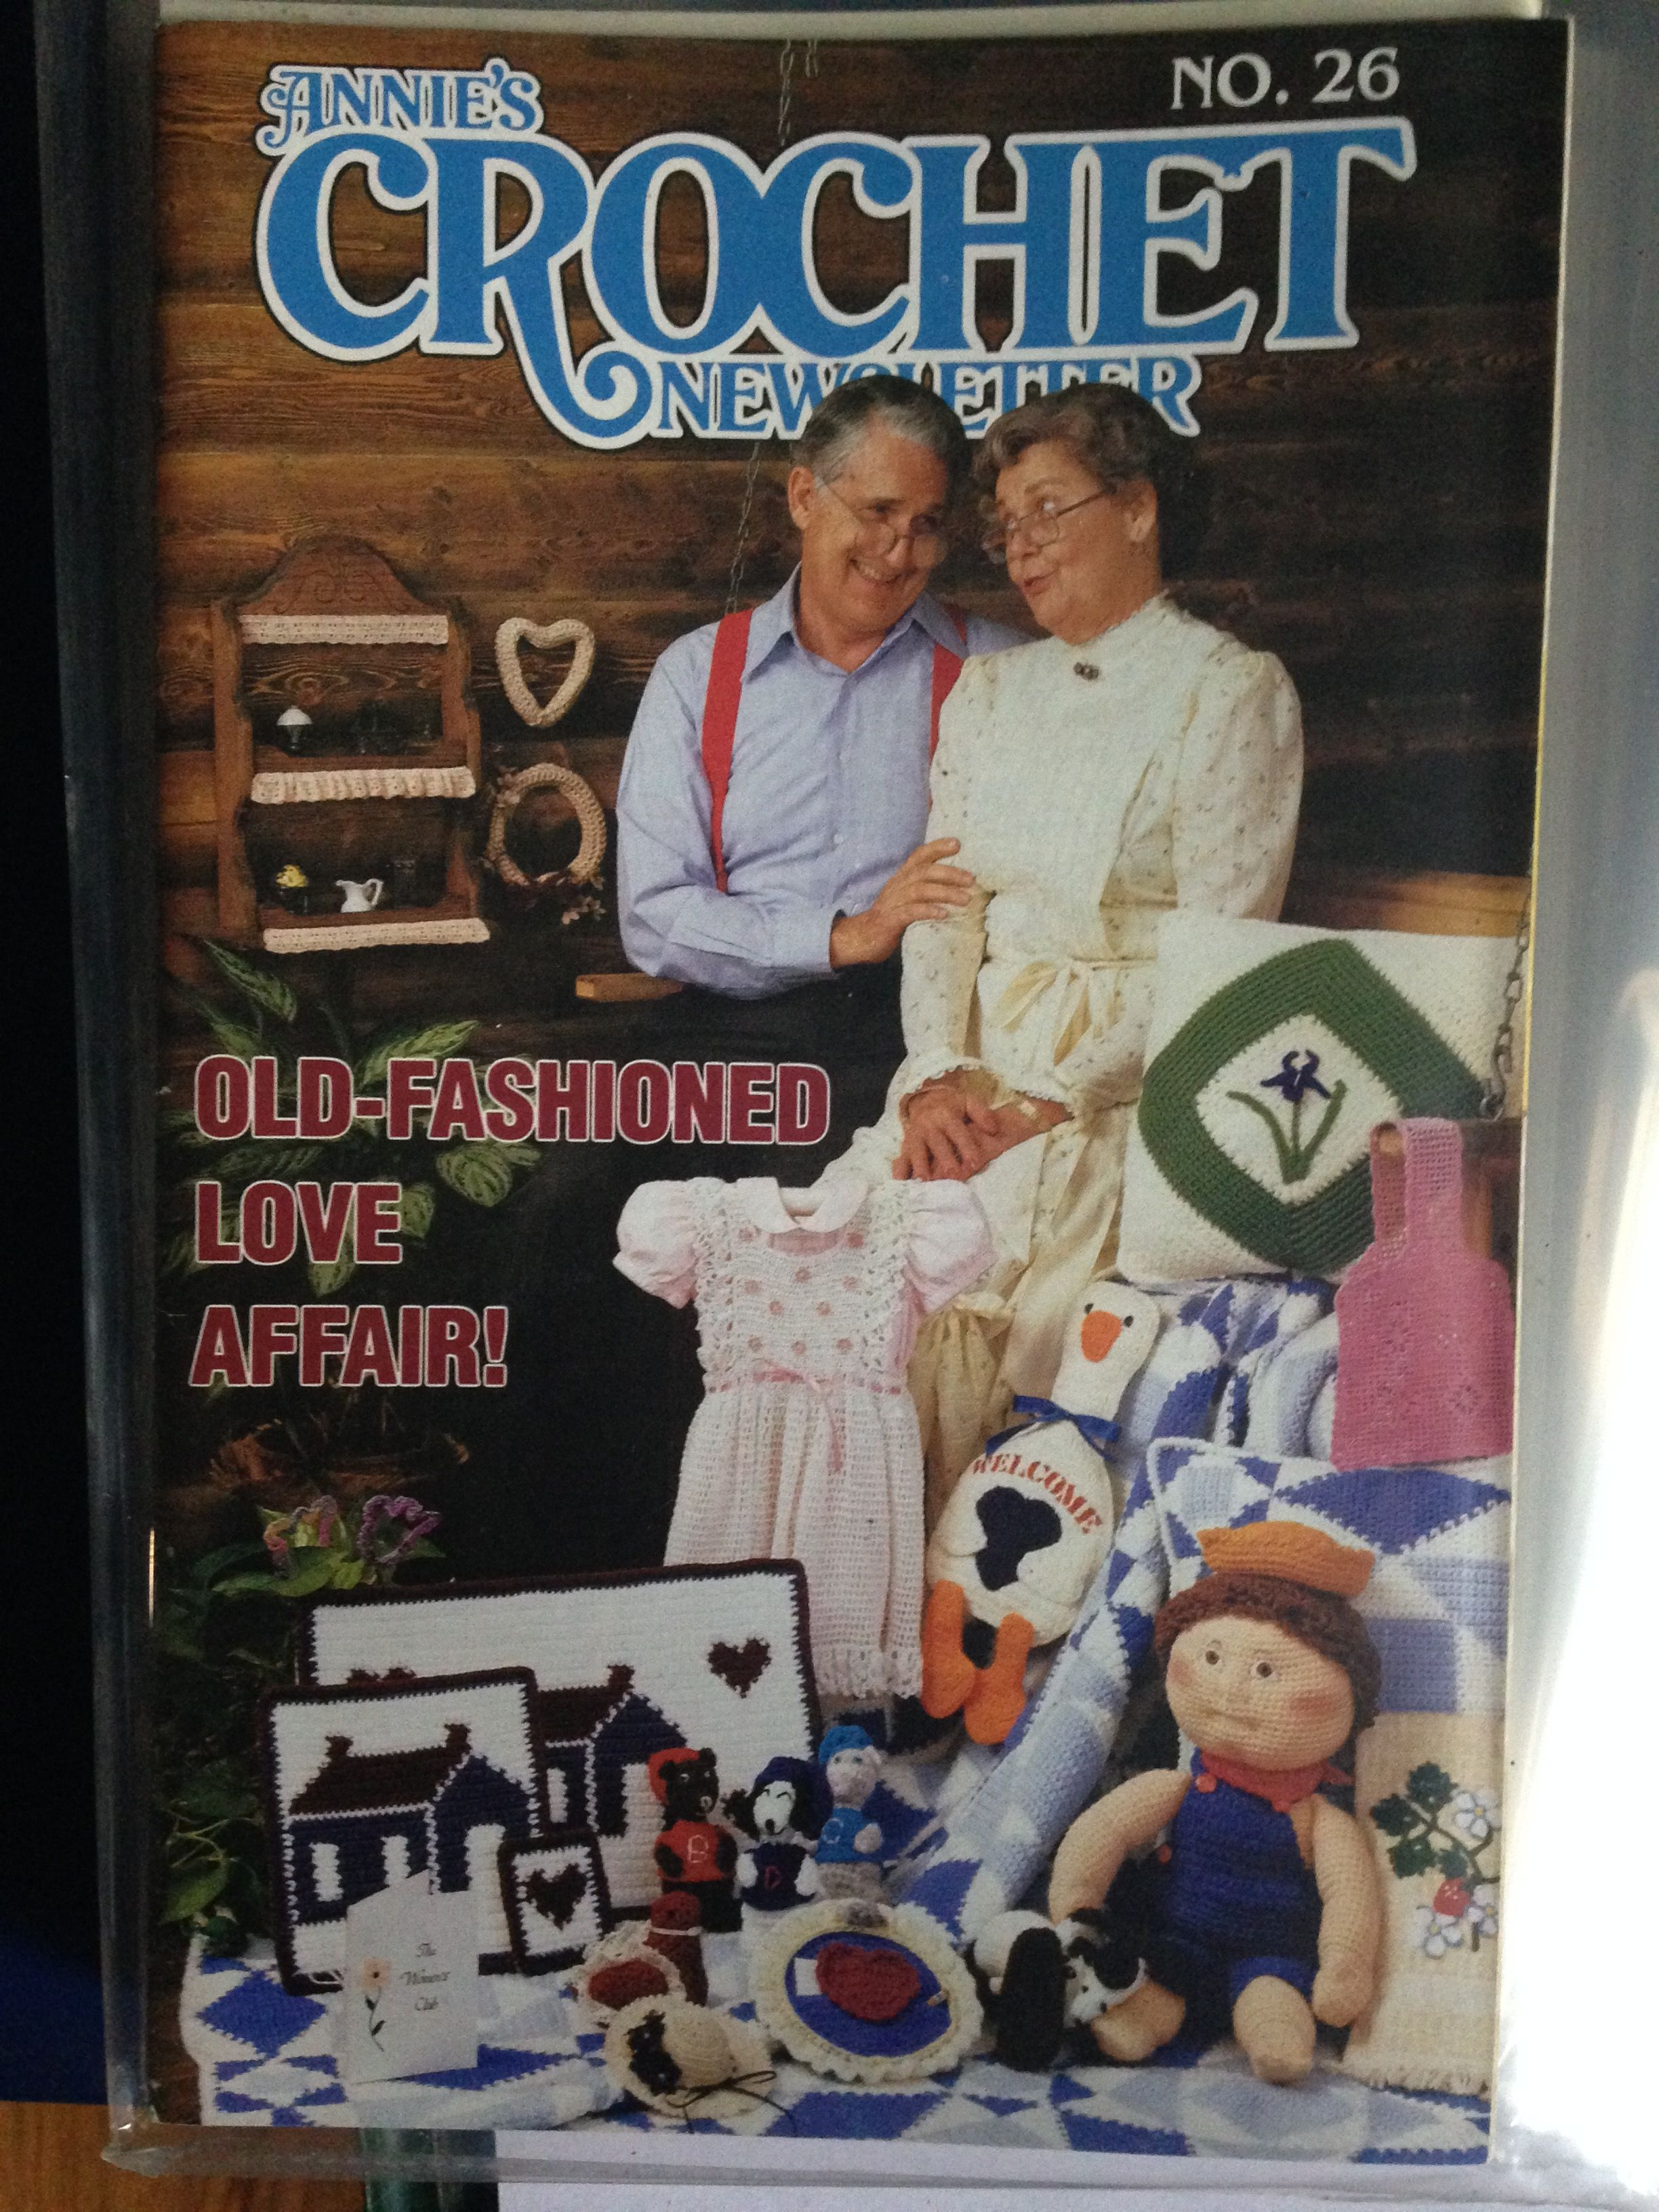 Annies crochet newsletter no26 old fashioned love